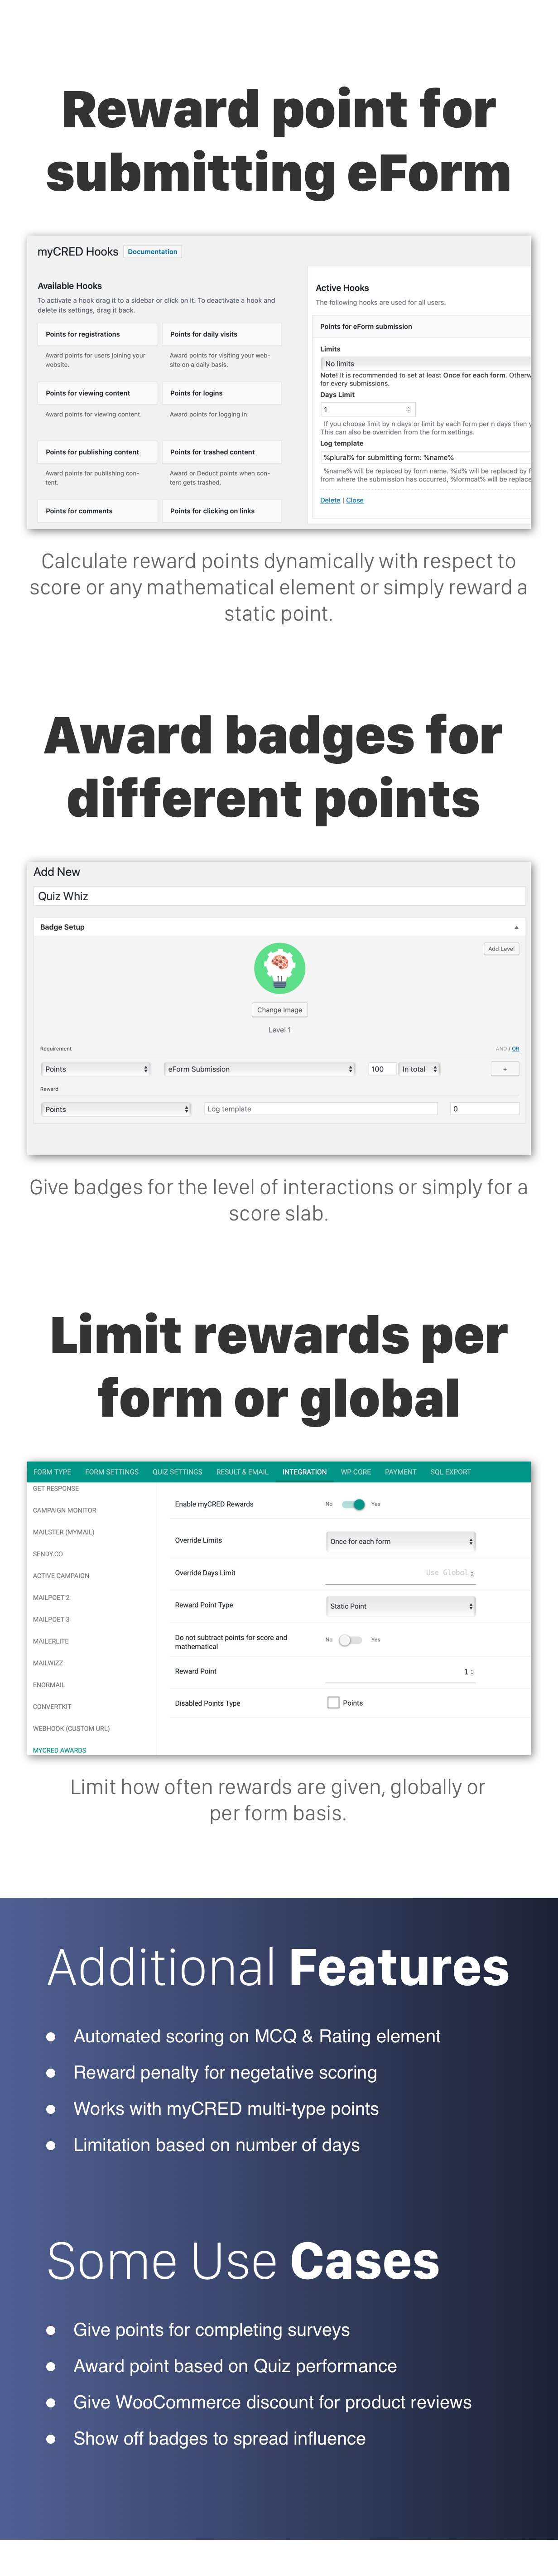 eForm myCRED product features